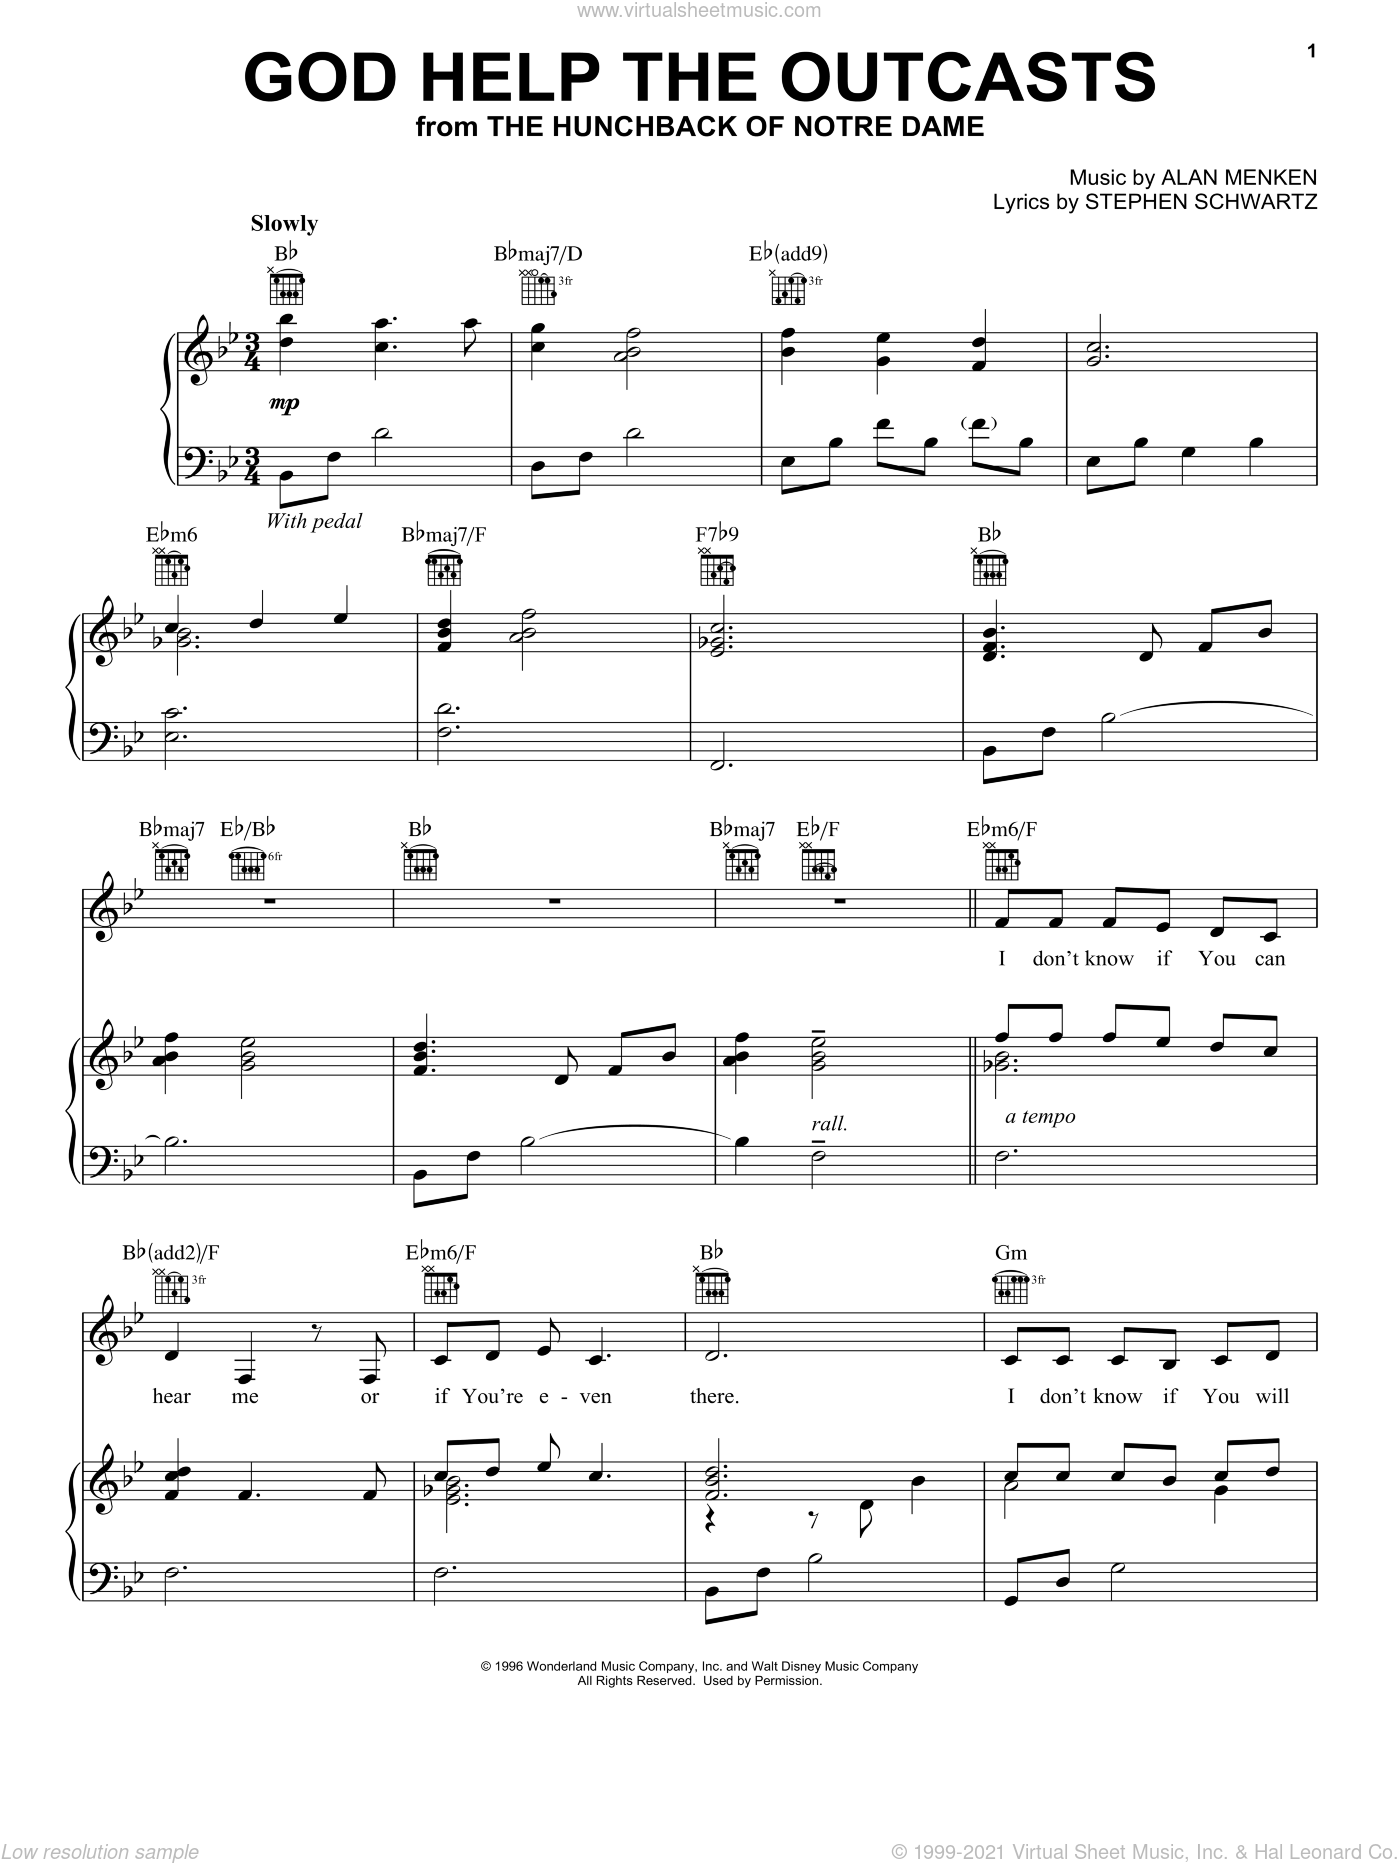 God Help The Outcasts sheet music for voice, piano or guitar by Stephen Schwartz